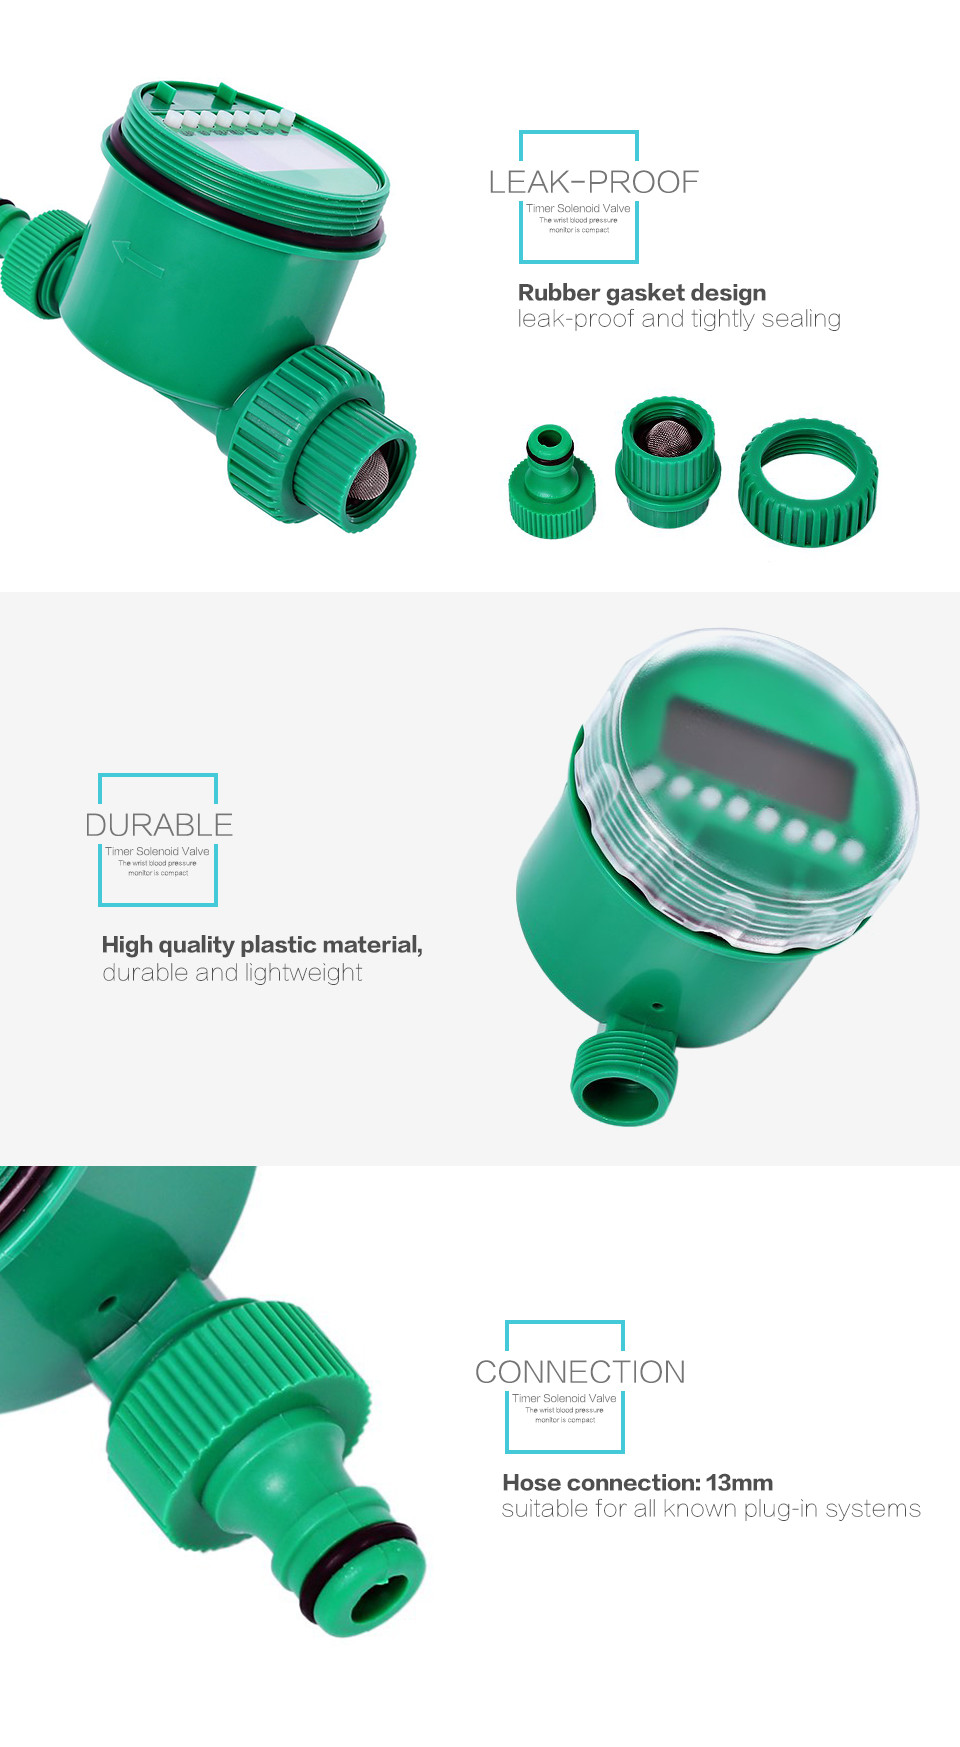 Valve Saver New Plastic Material Electronic Garden Water Timer Sink Faucet Supply Shutoff Diagram Aaa Service Plumbing Package Contents 1 X Irrigation Tap Connection Unit Nut Screw Cover Usage Instructions